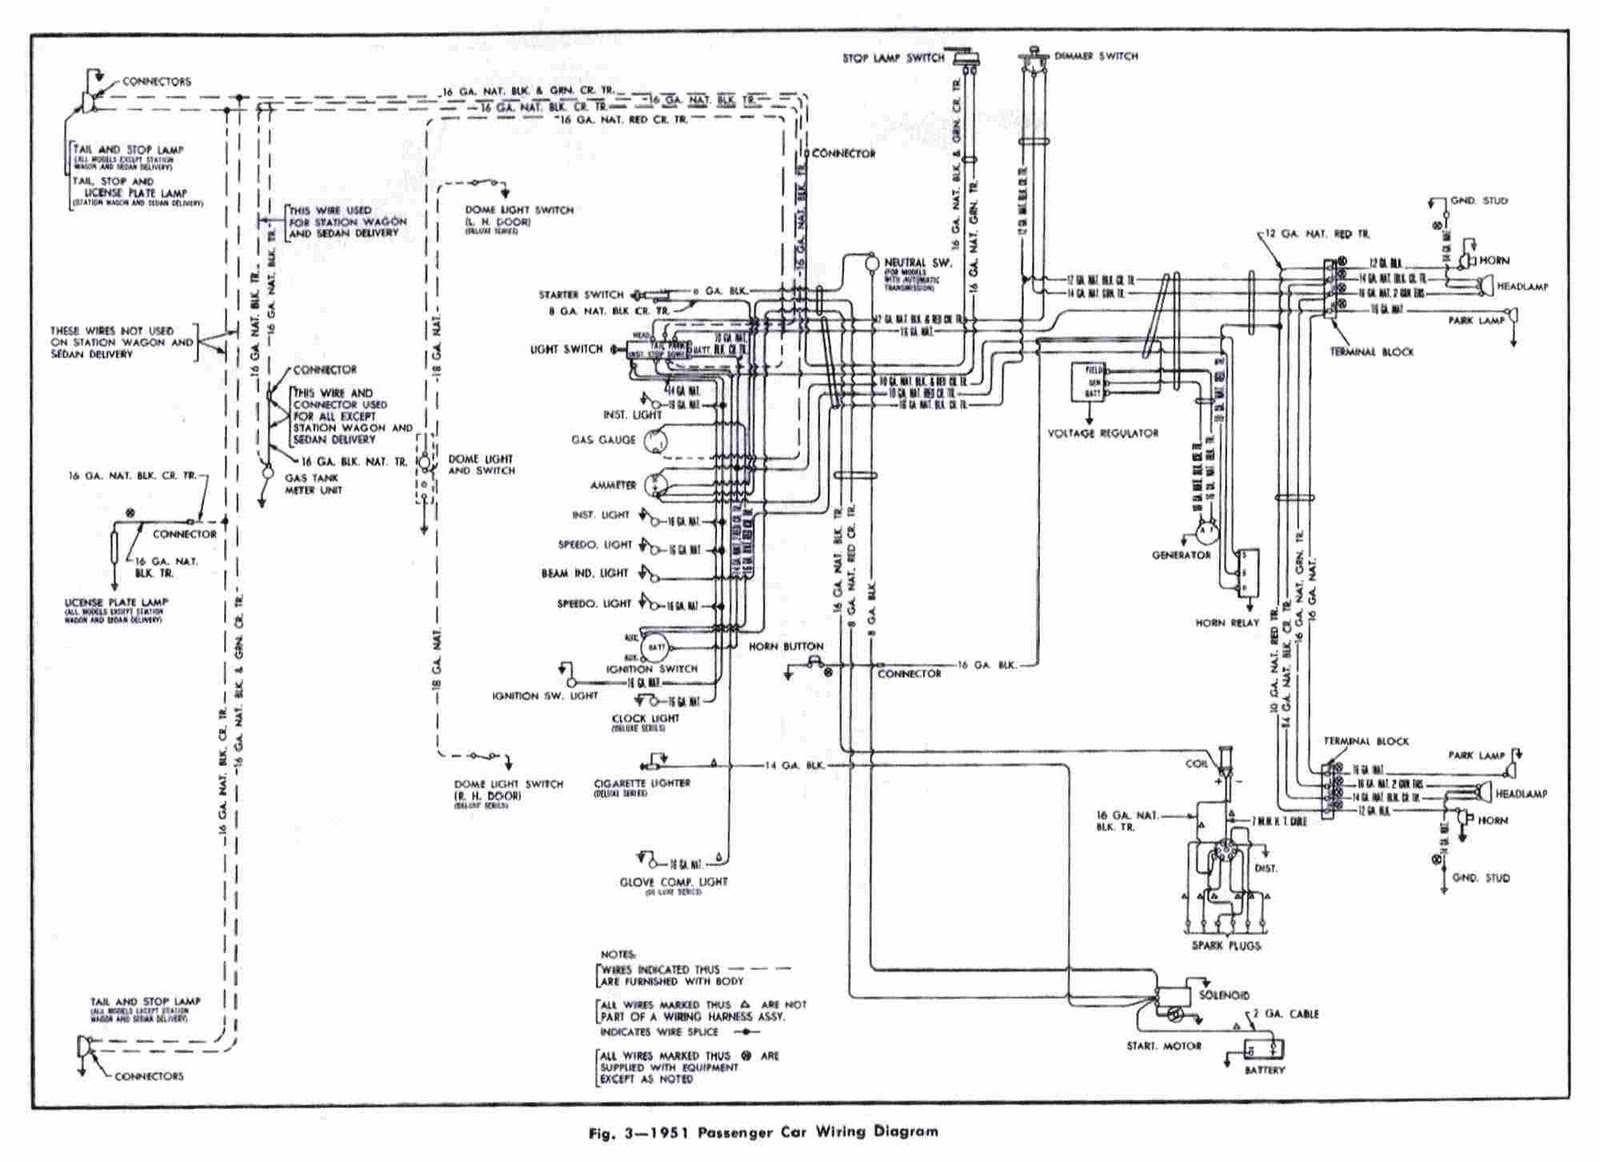 Automotive Engine Wiring Diagram : Volvo xc v engine free image for user